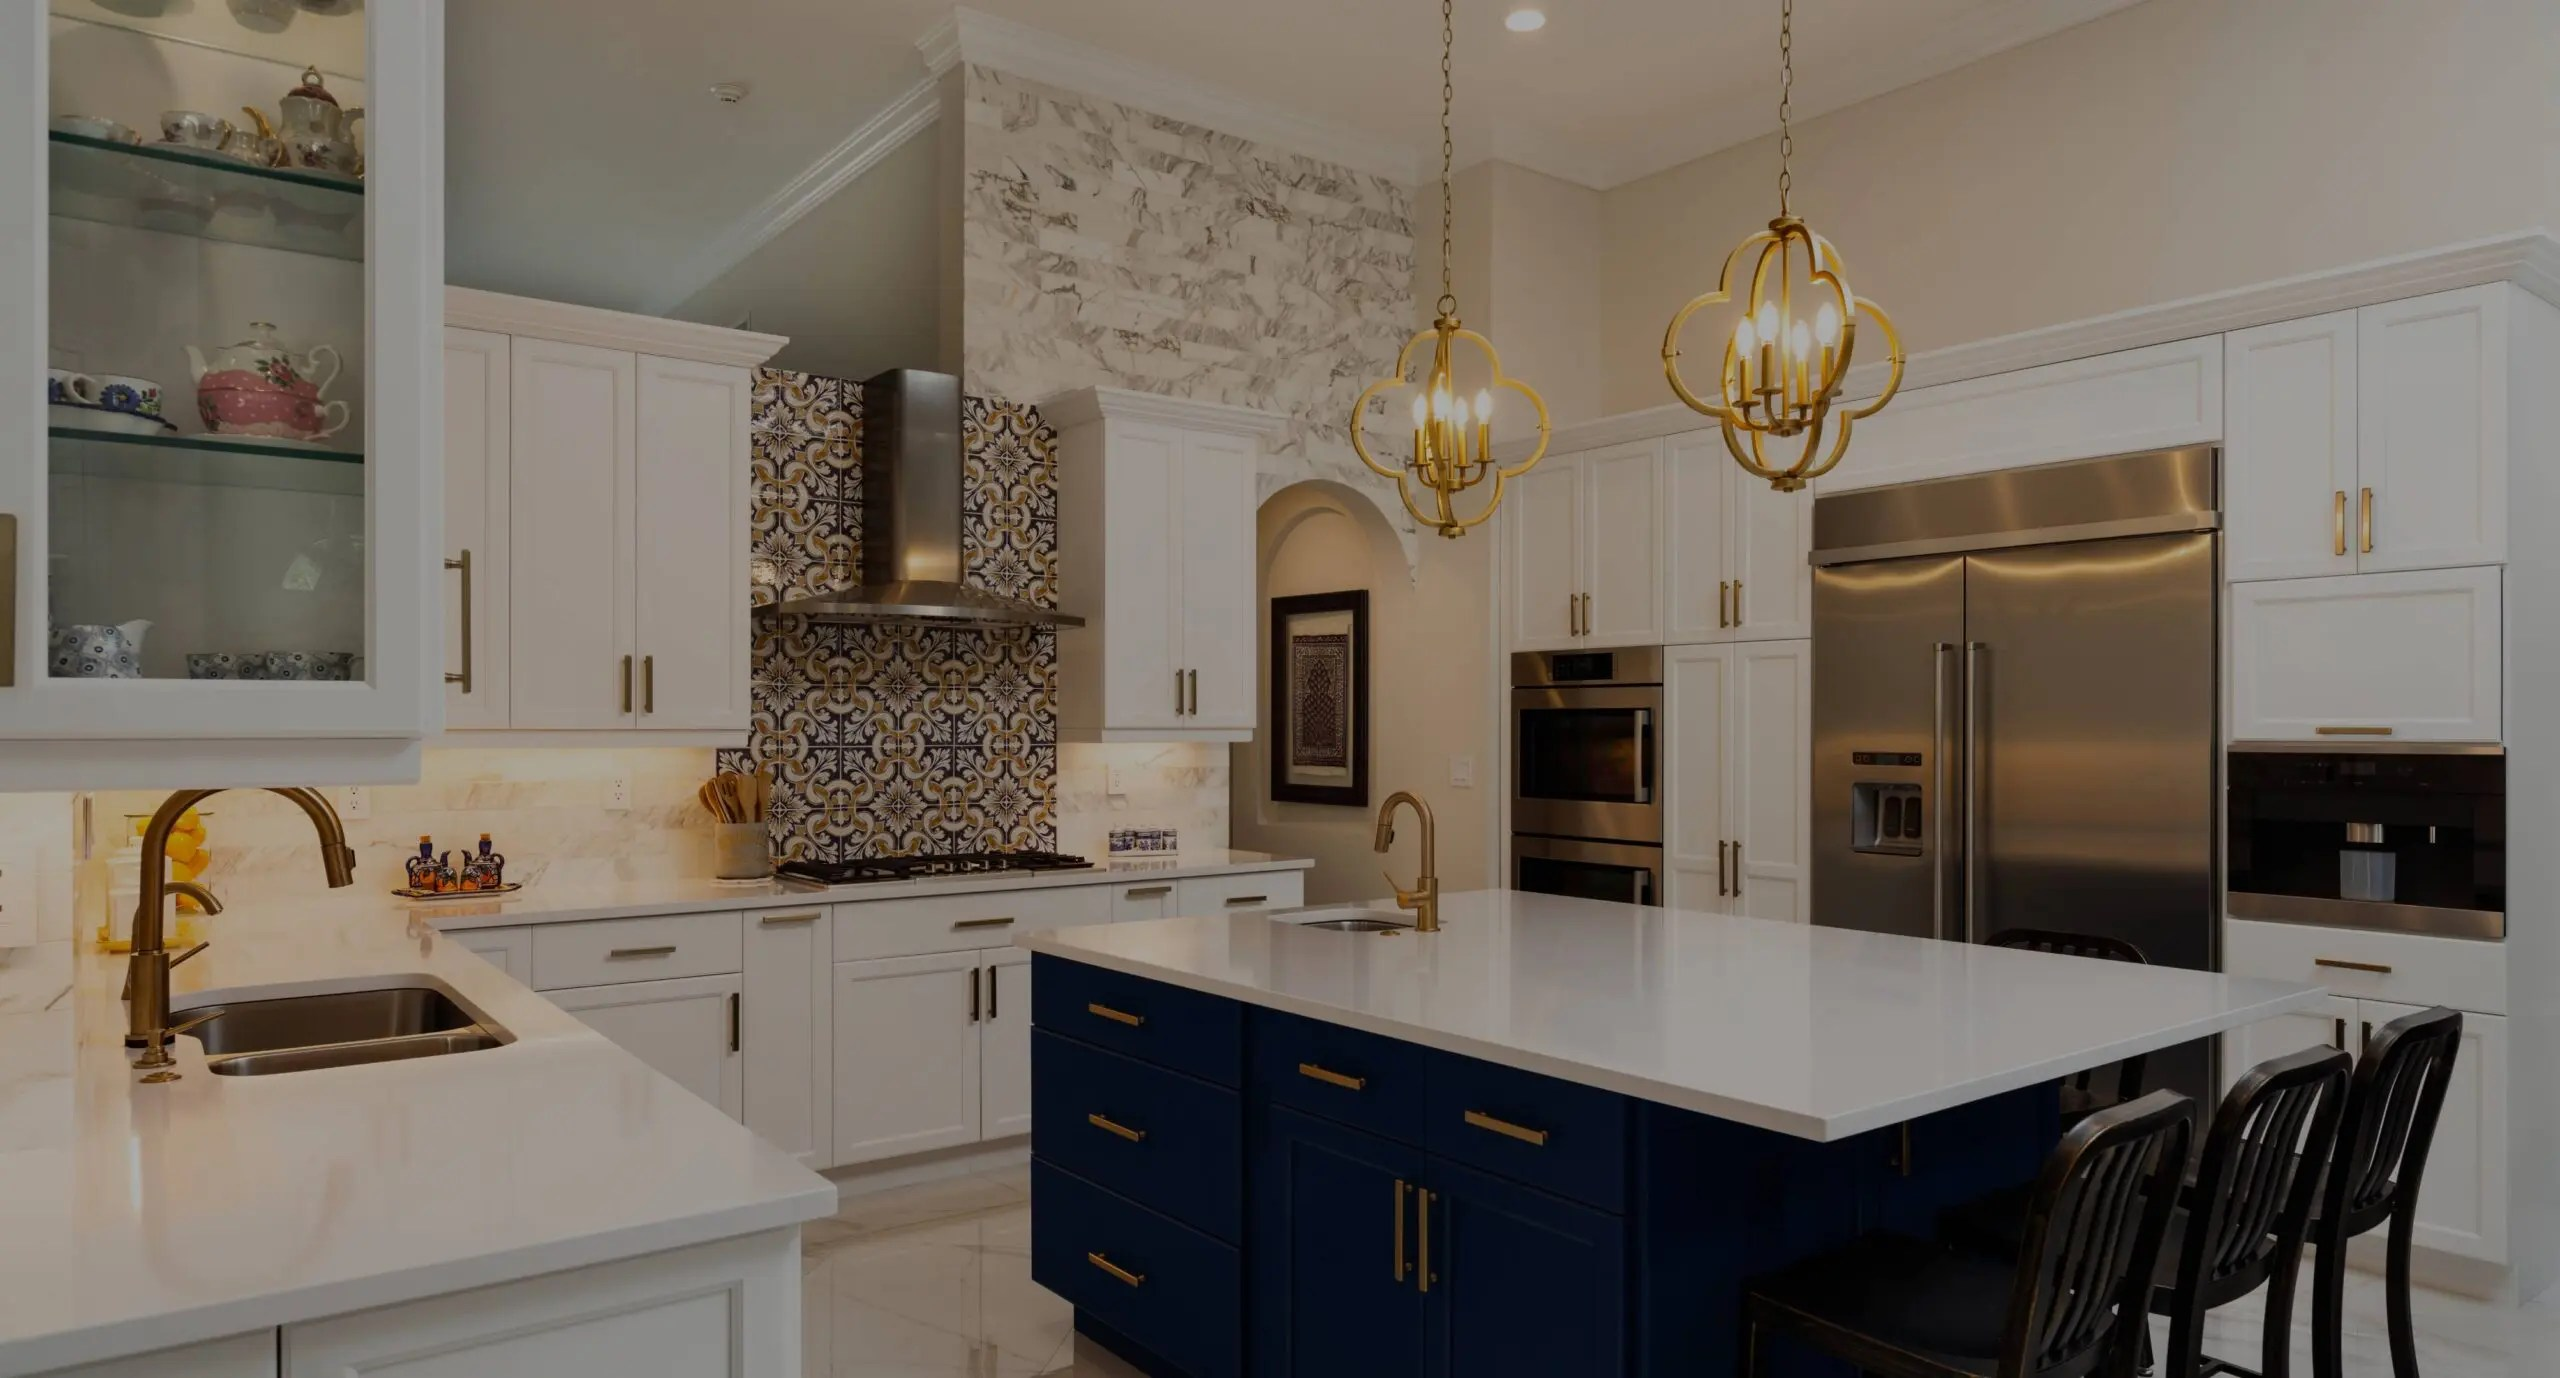 kitchen remodel and bathroom renovation projects